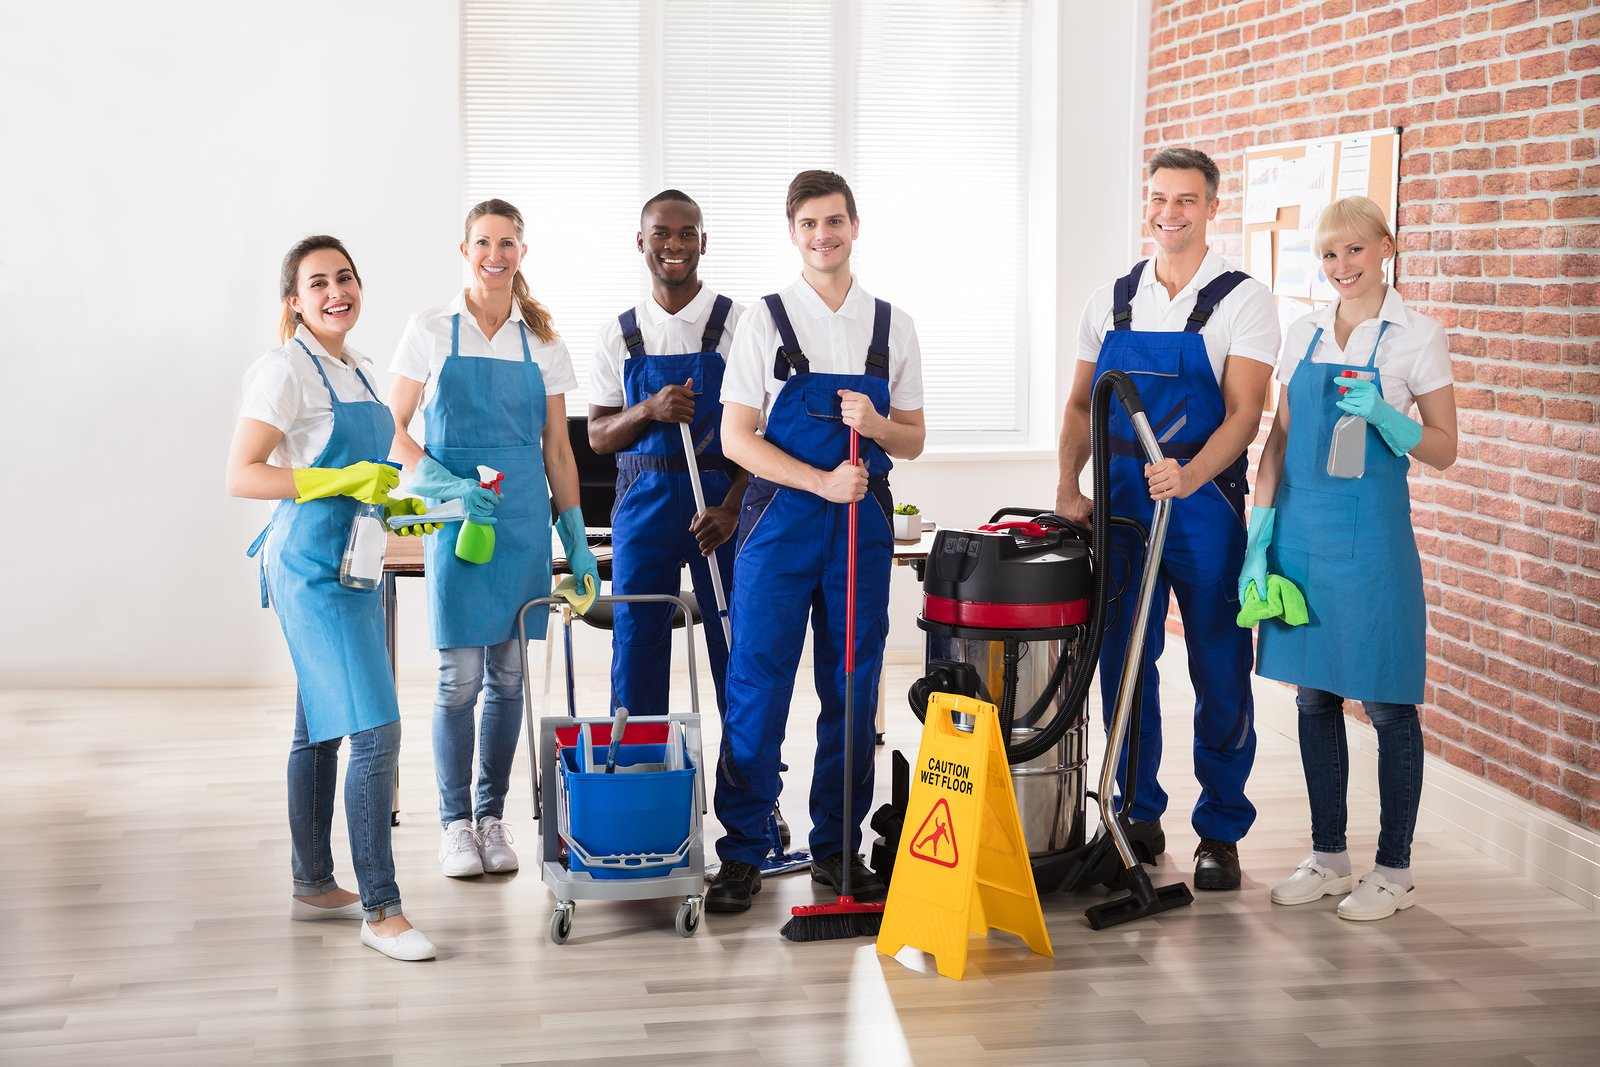 janitorial services detroit, commercial cleaning companies detroit, livonia cleaning company, downriver janitorial services